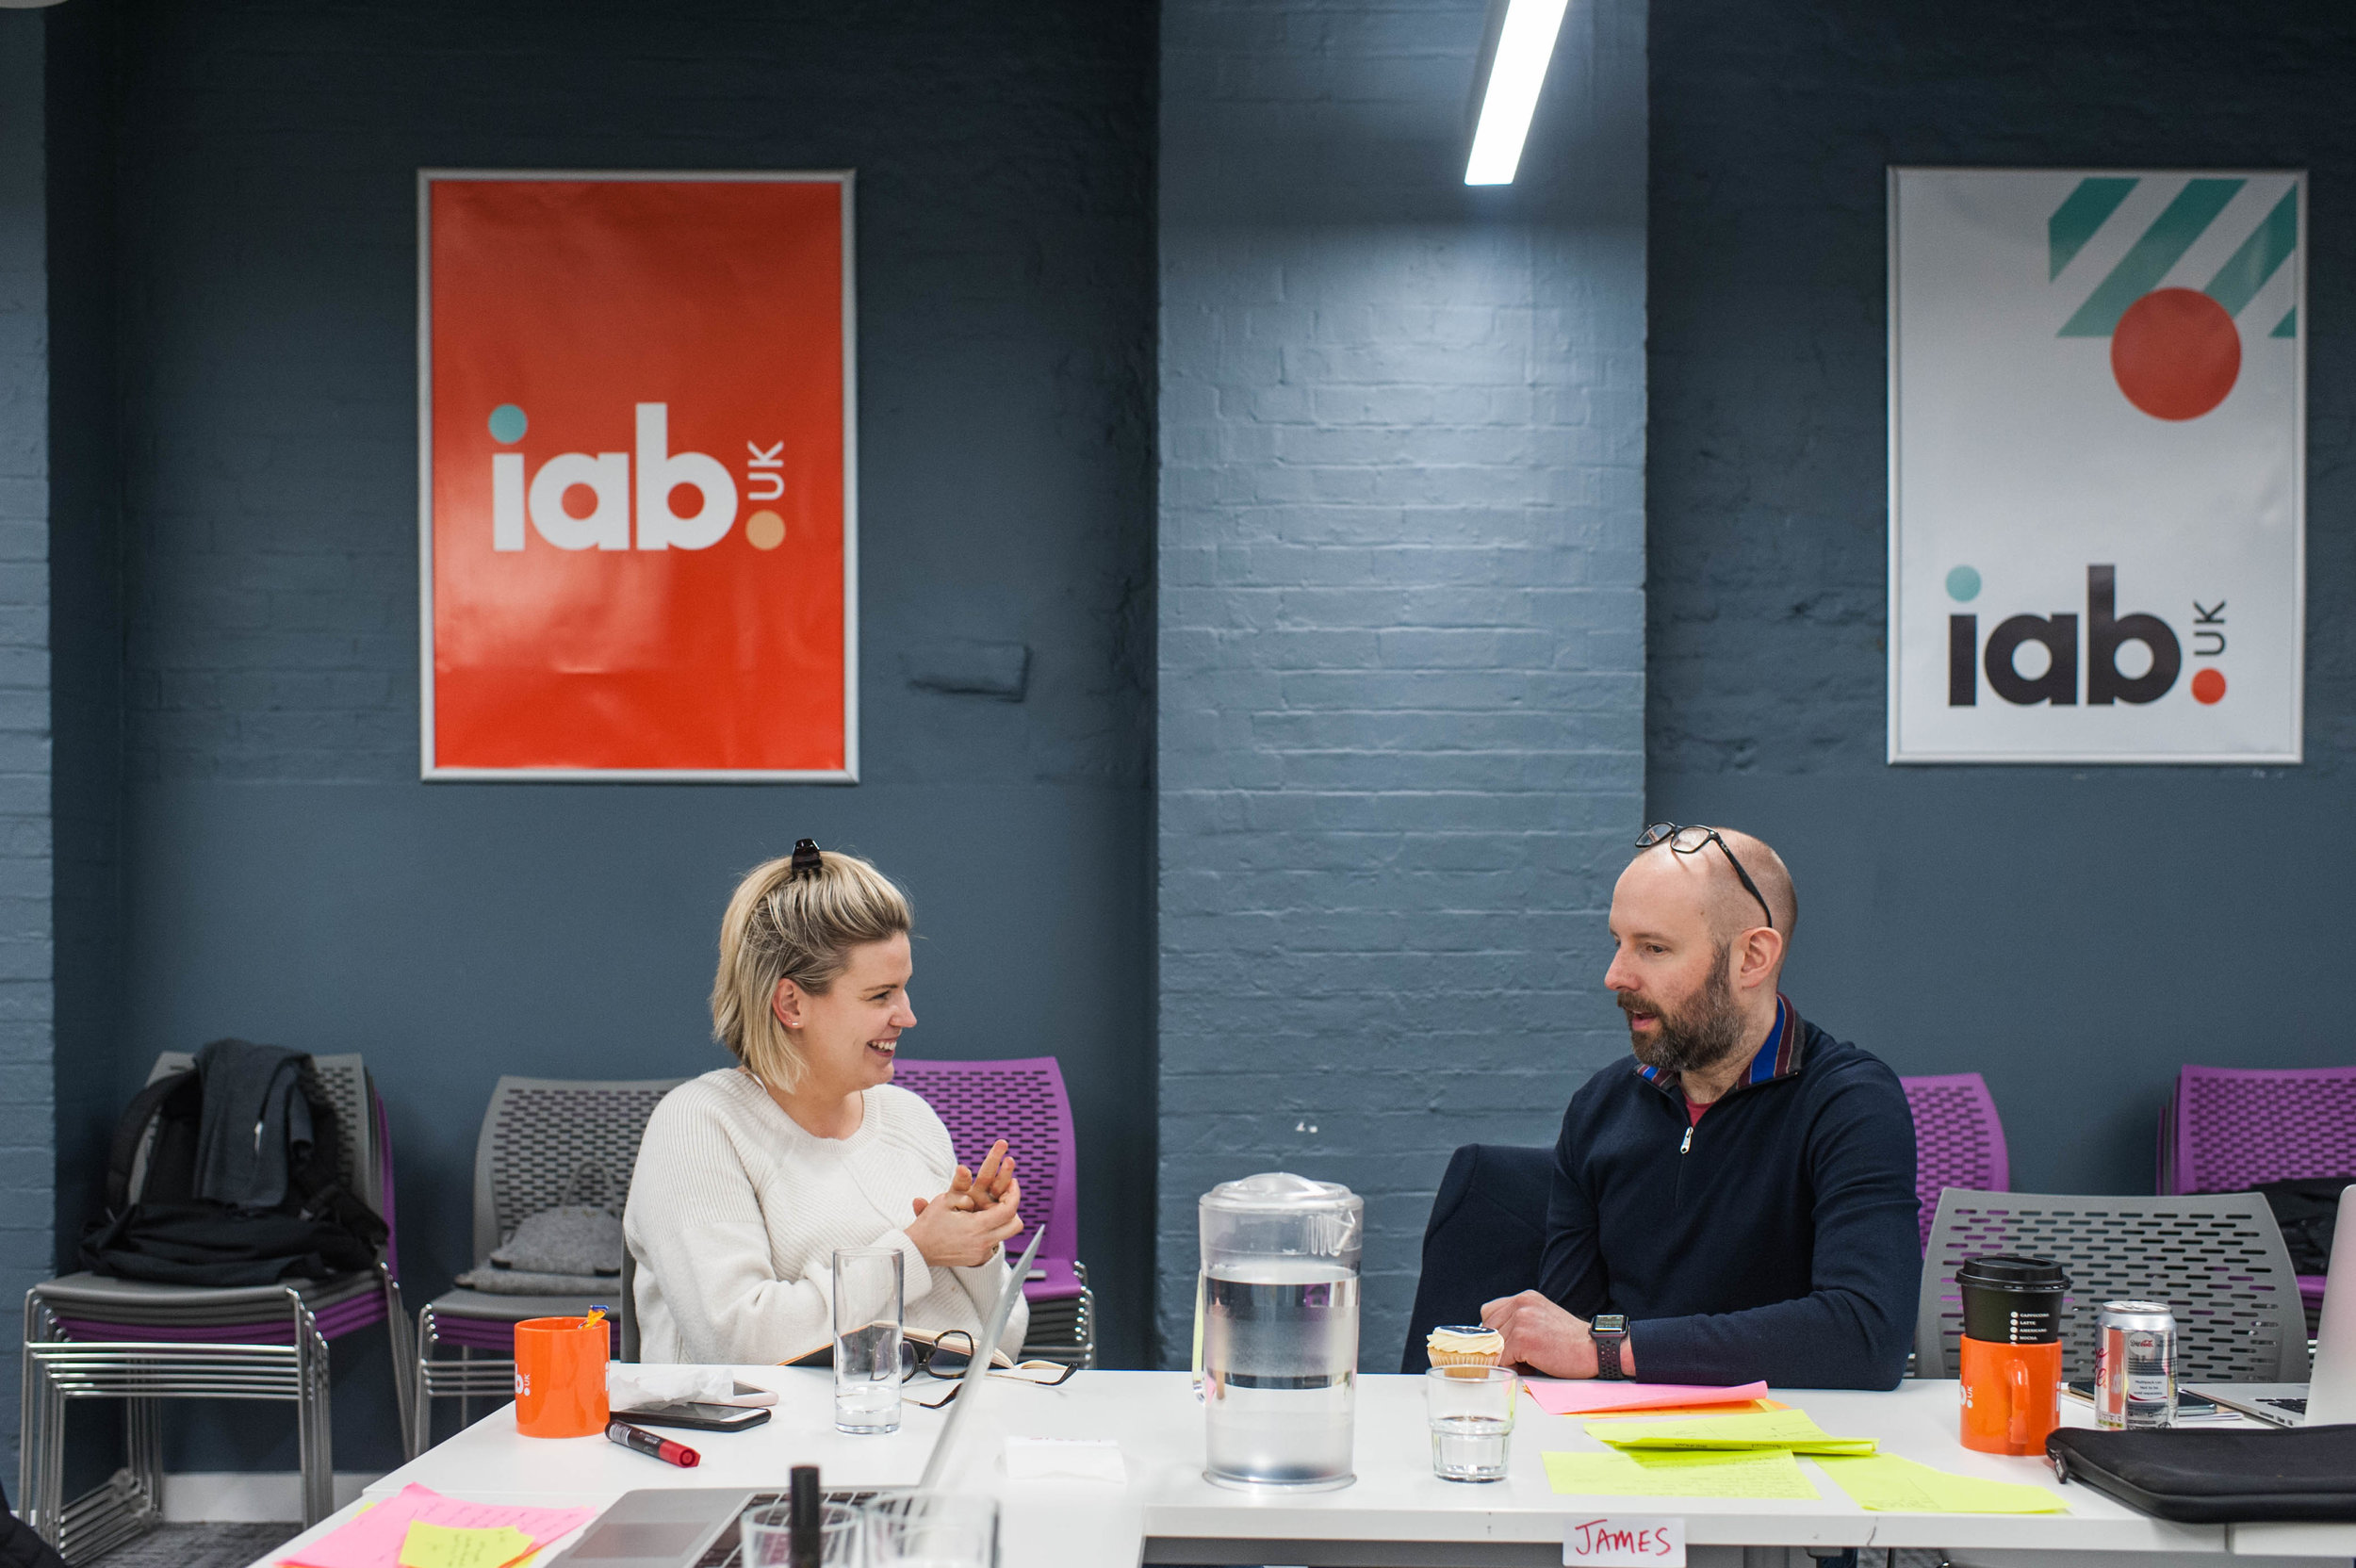 IAB Uk_Incidental Shots_SM (298 of 312).jpg